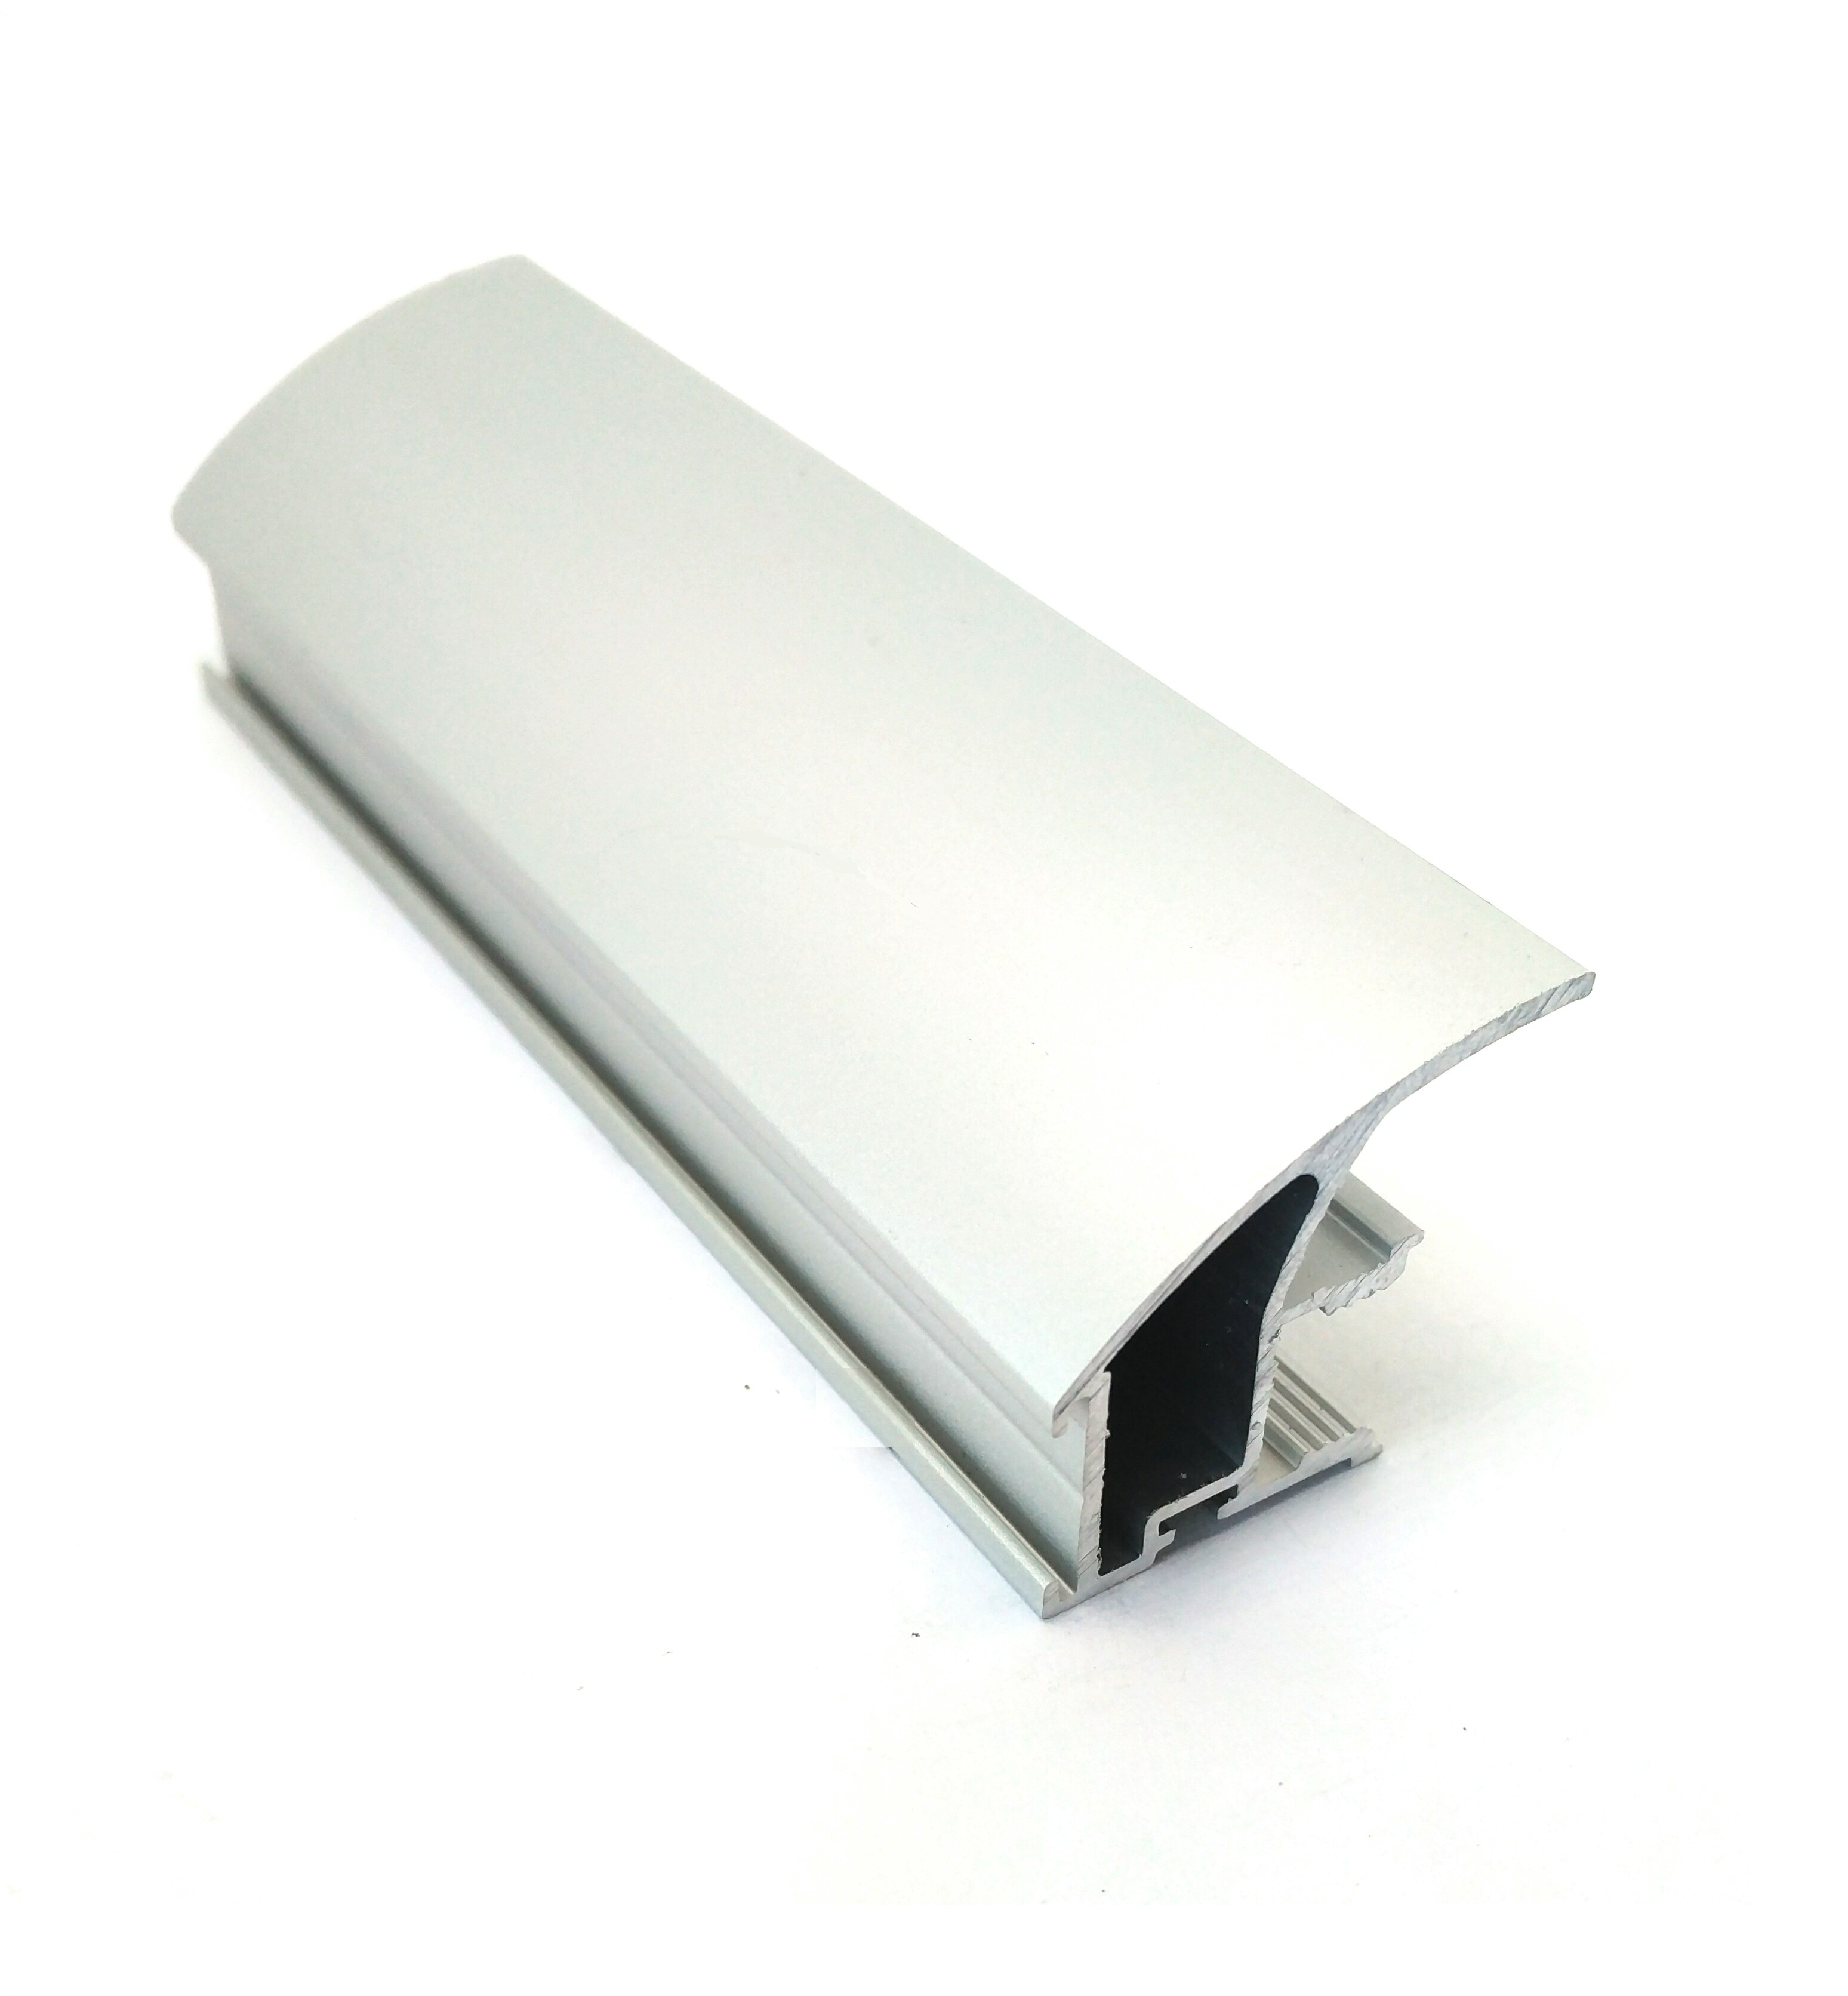 SOLAR I Sliding door kits SILVER